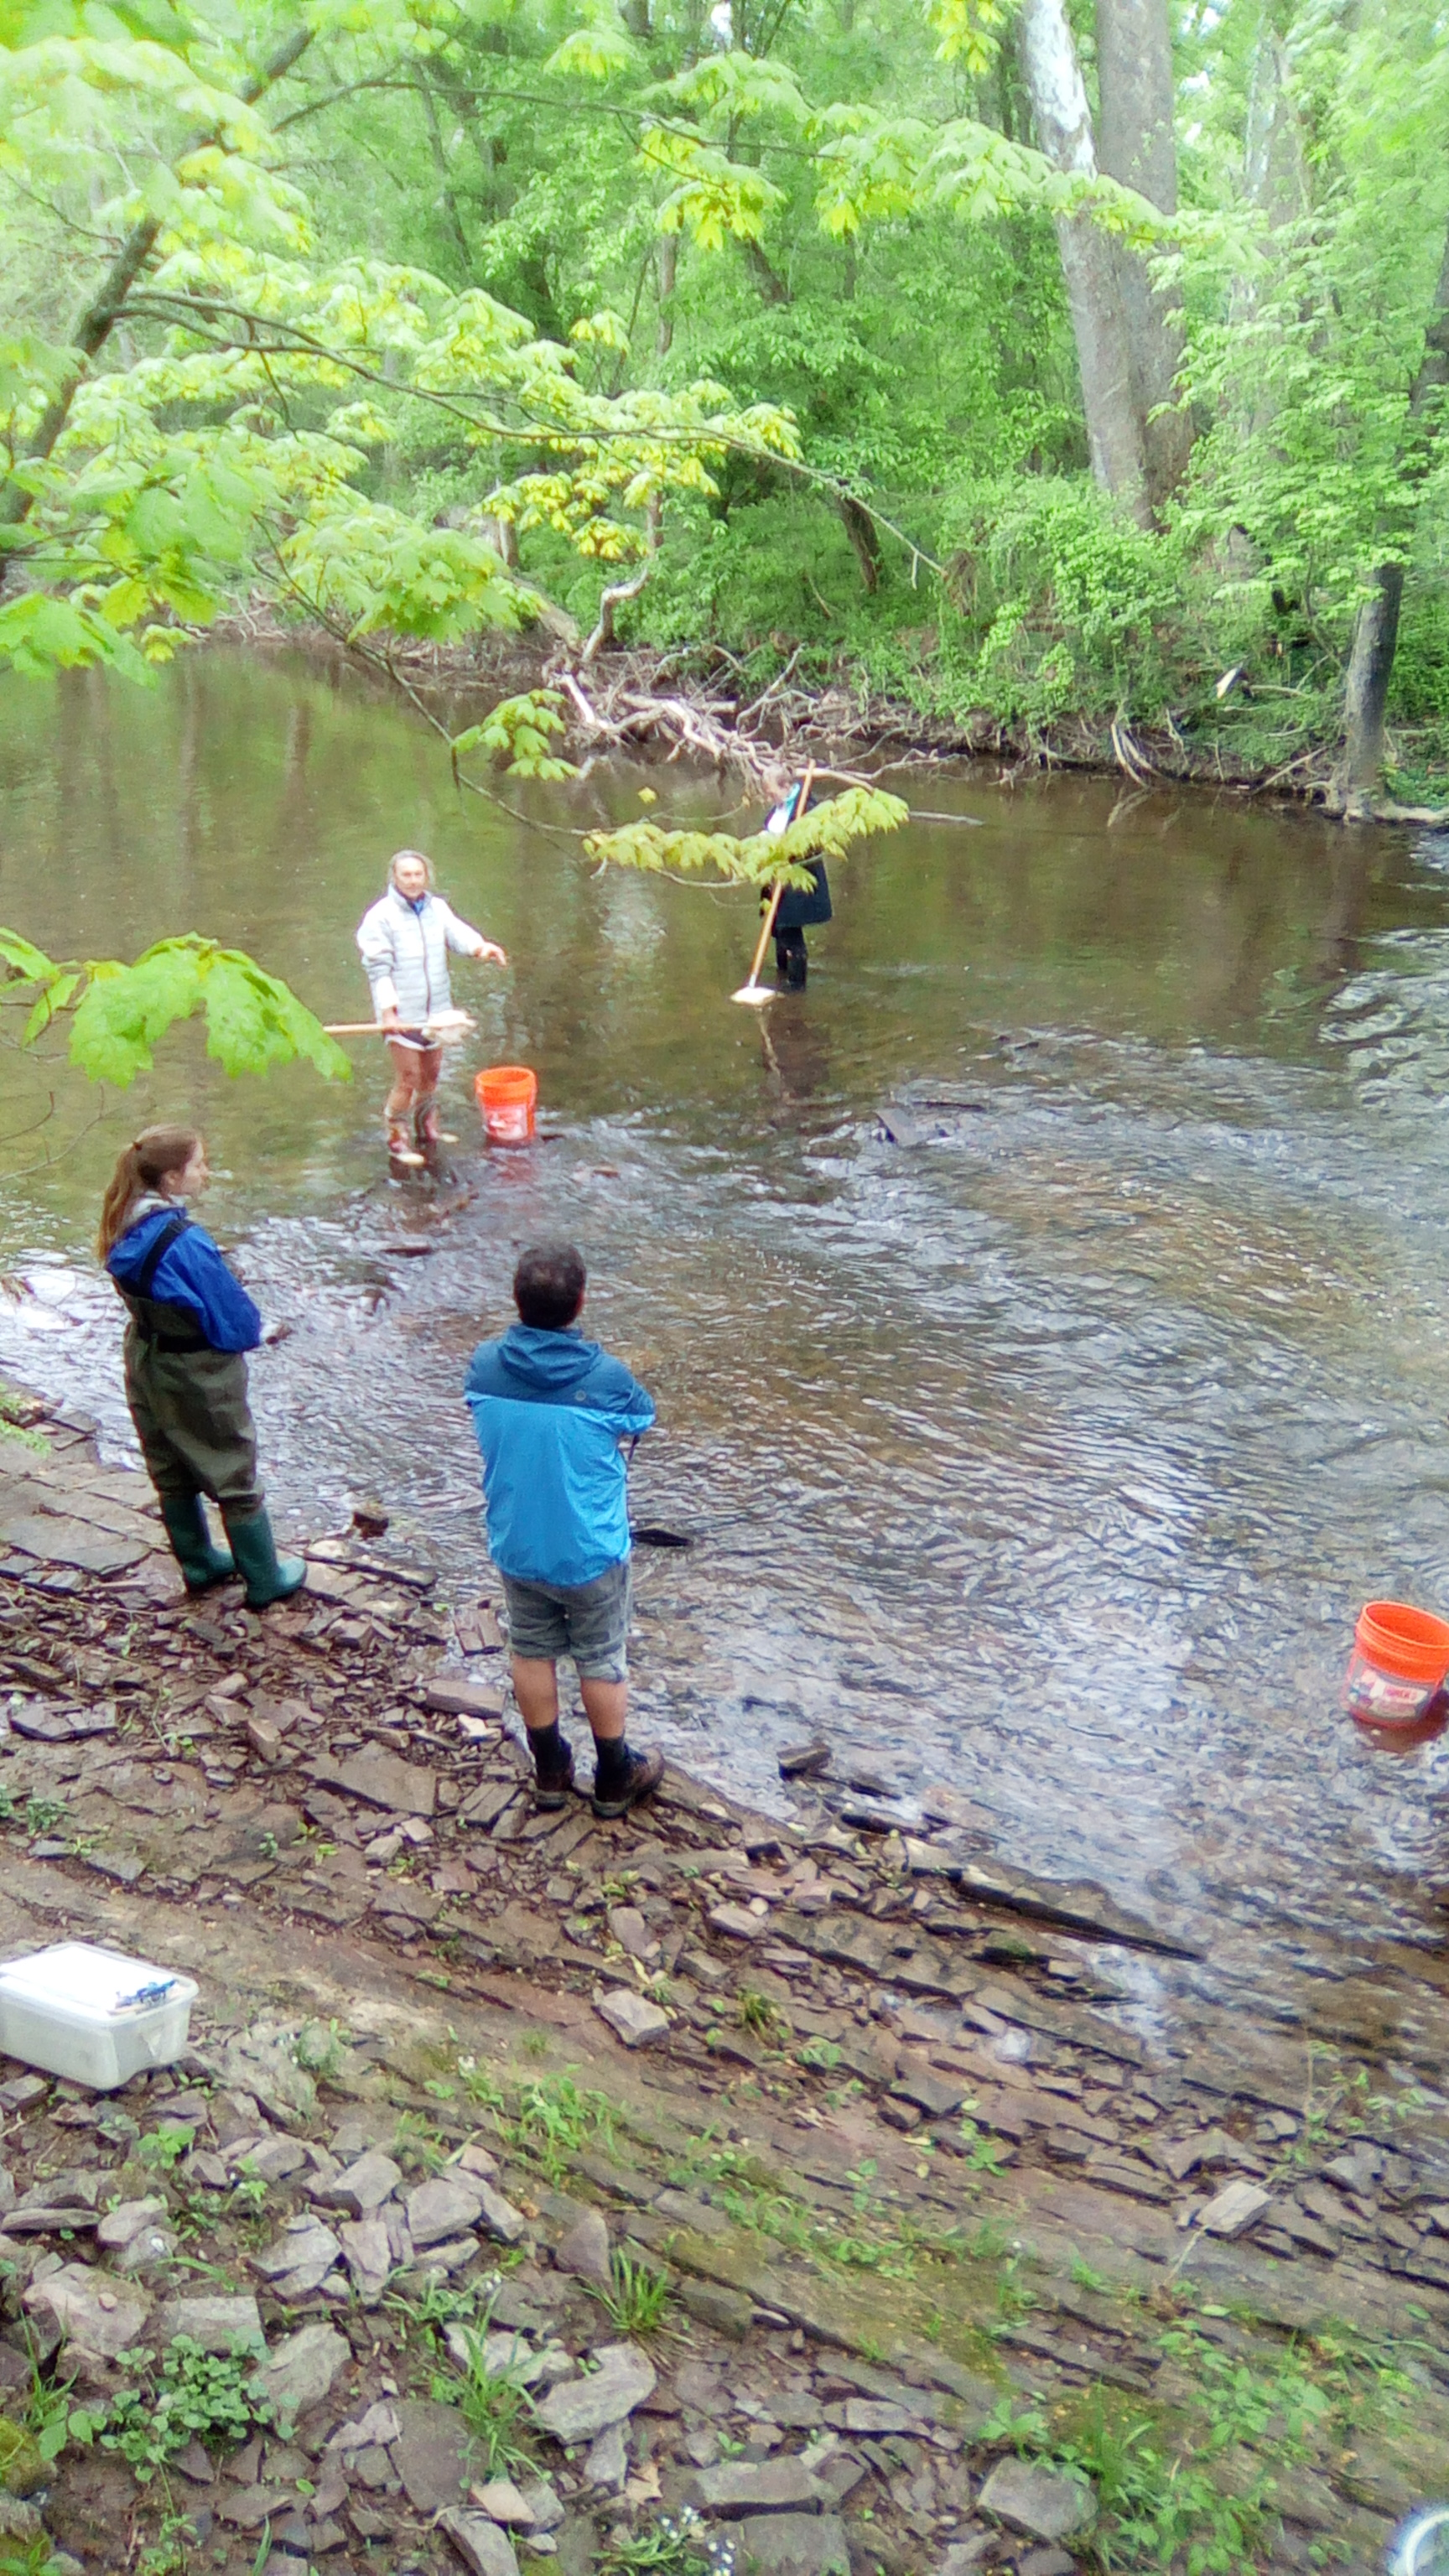 Volunteers learning how to collect aquatic macroinvertebrates